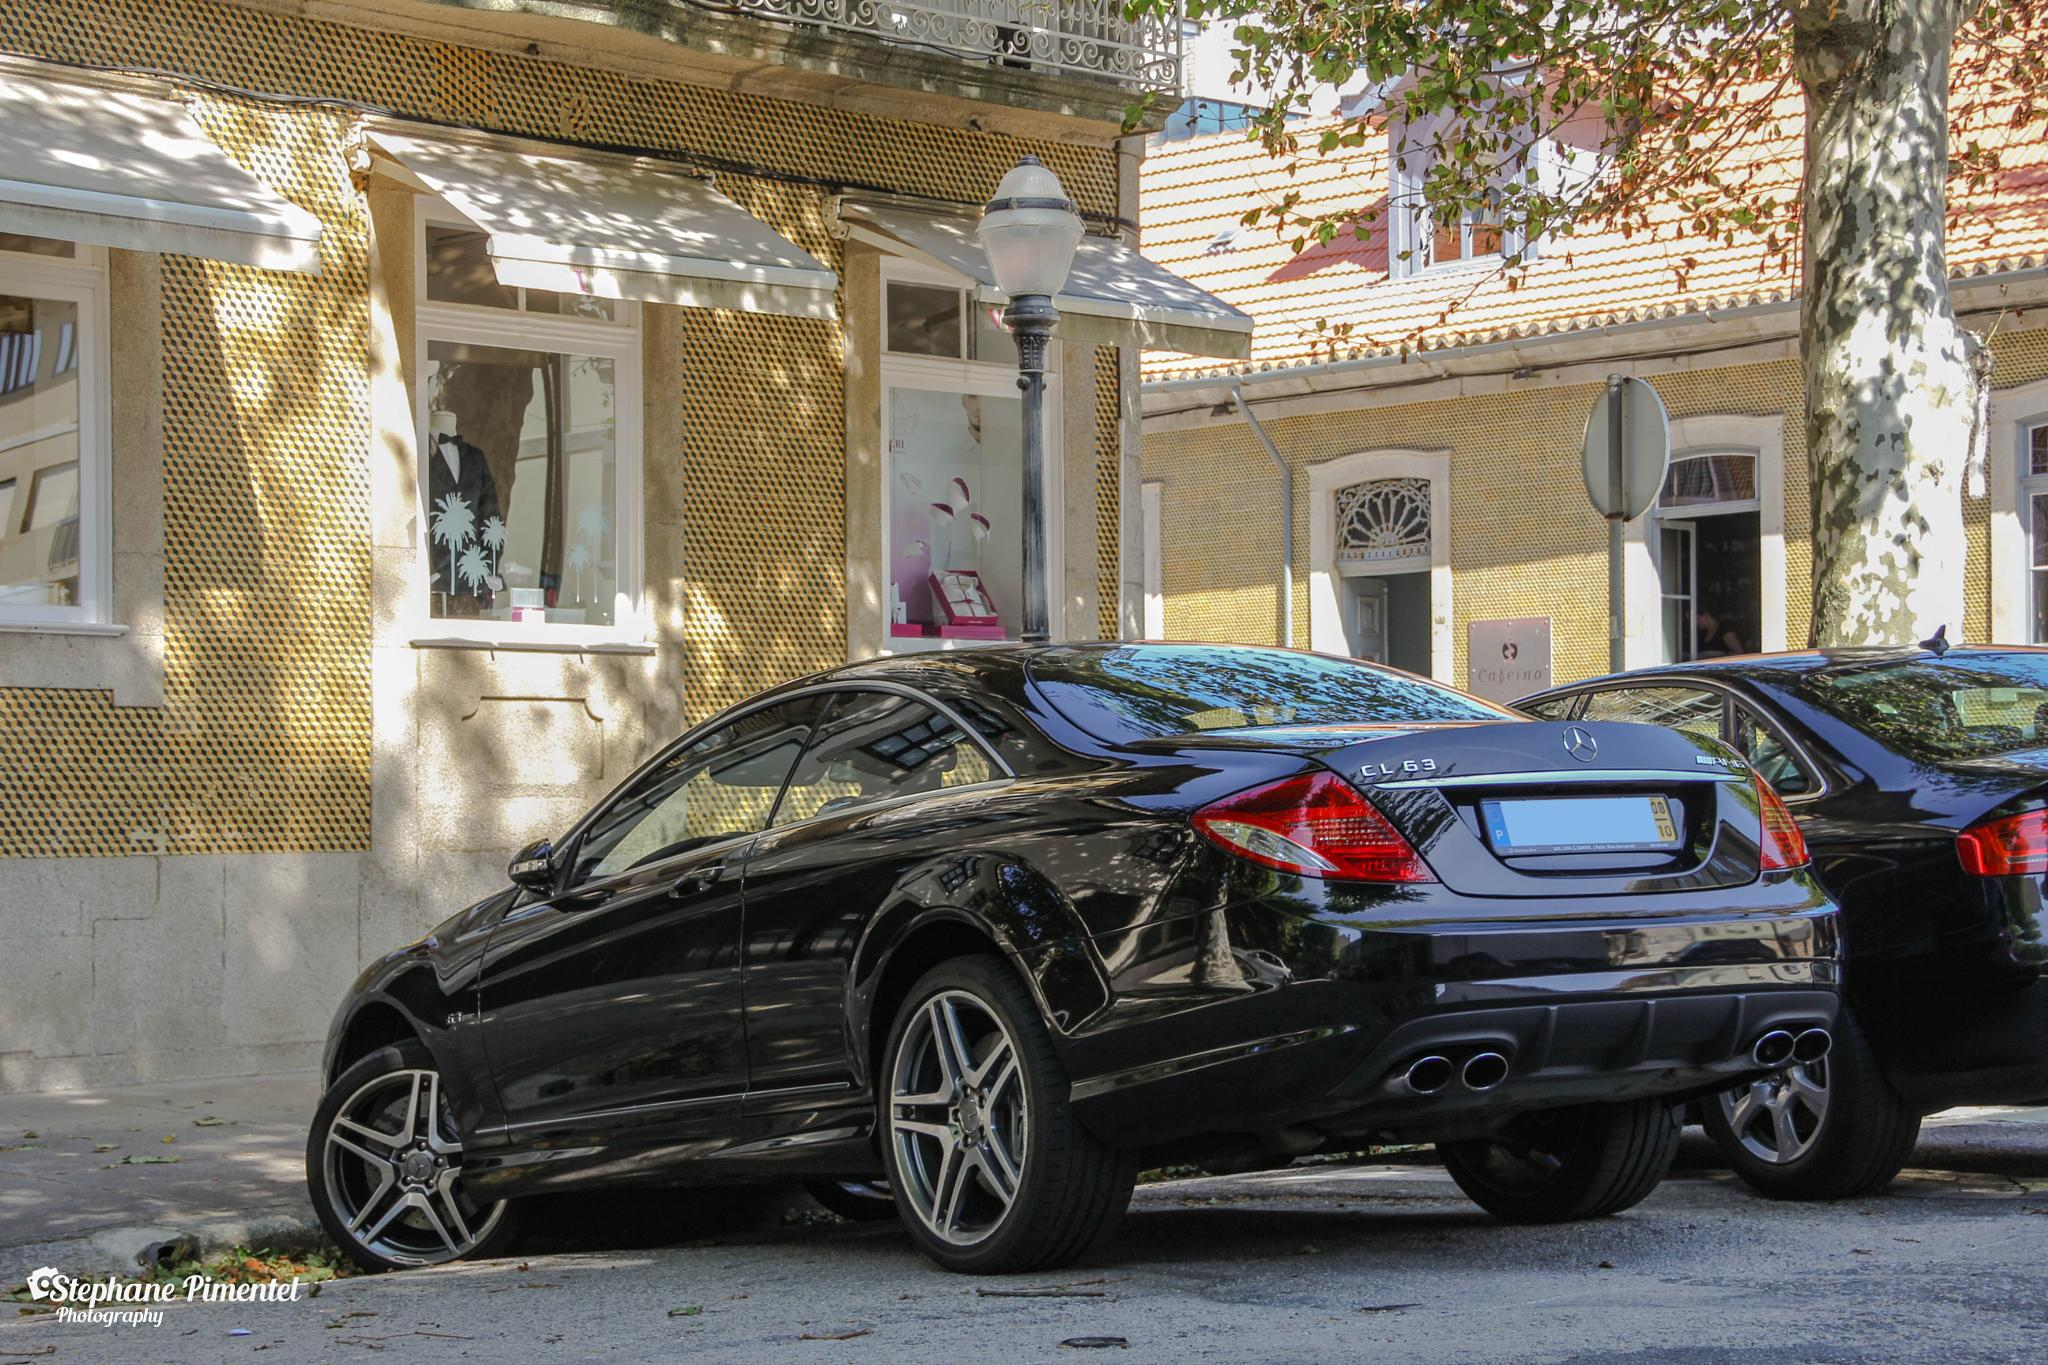 CL63 AMG by Stephane Pimentel Photography